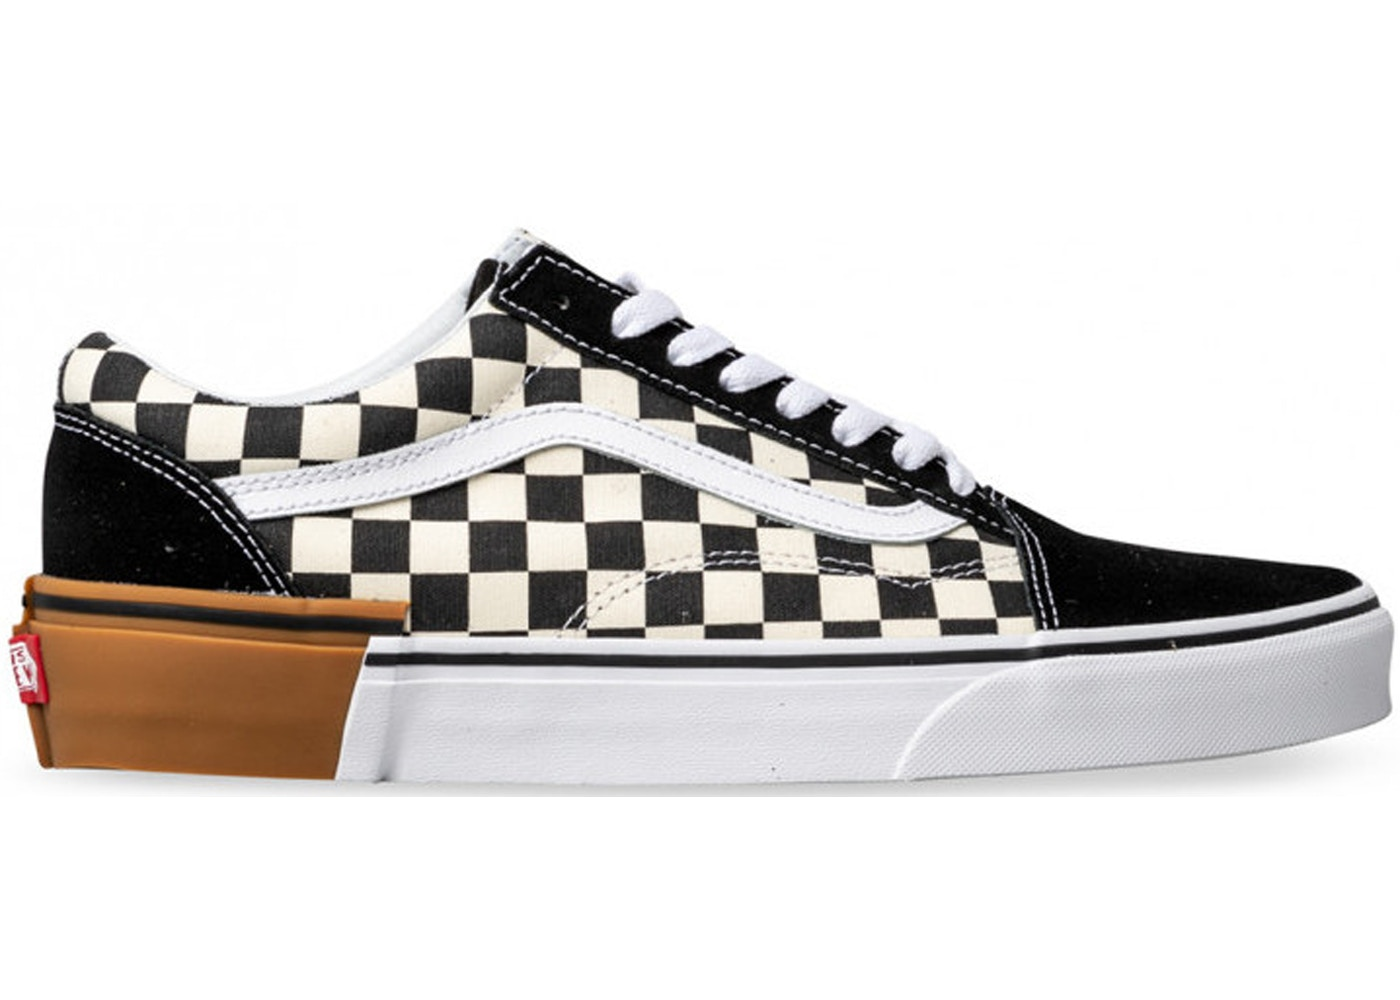 75c83061 Vans Old Skool Checkerboard Gum Sole